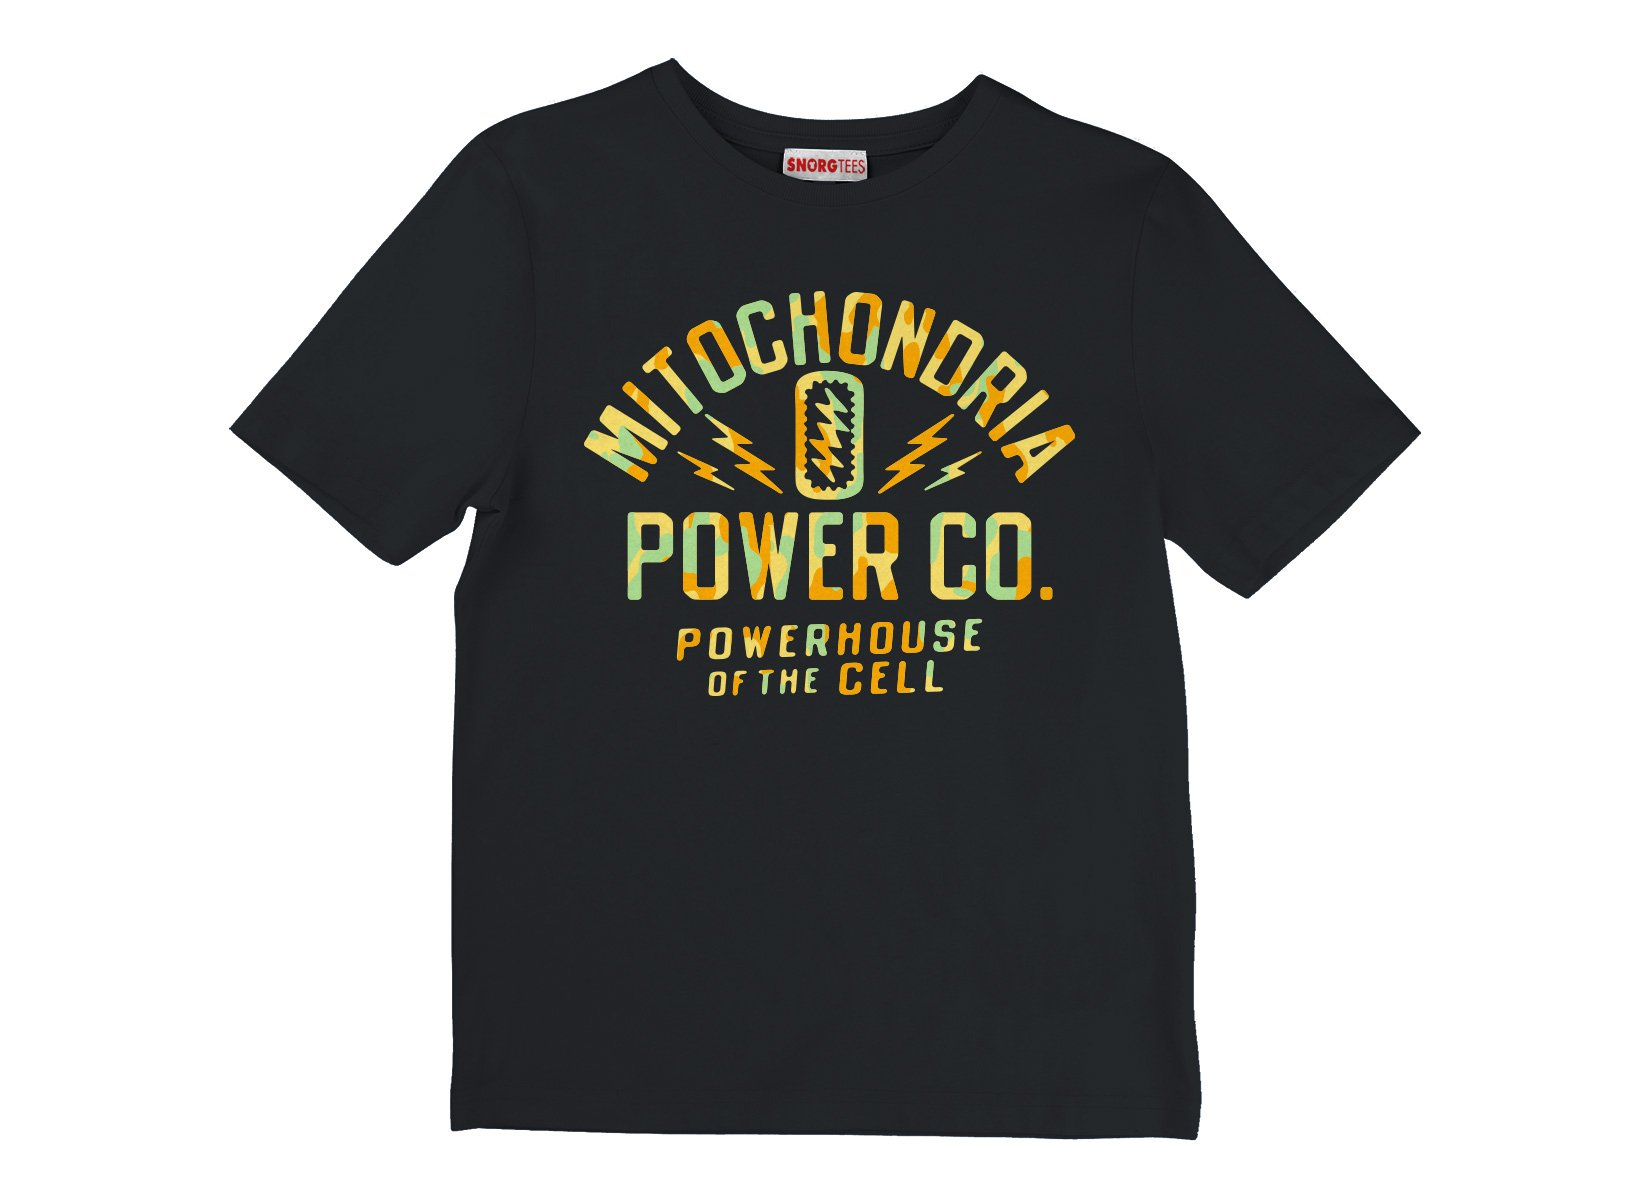 Mitochondria Powerhouse Of The Cell on Kids T-Shirt